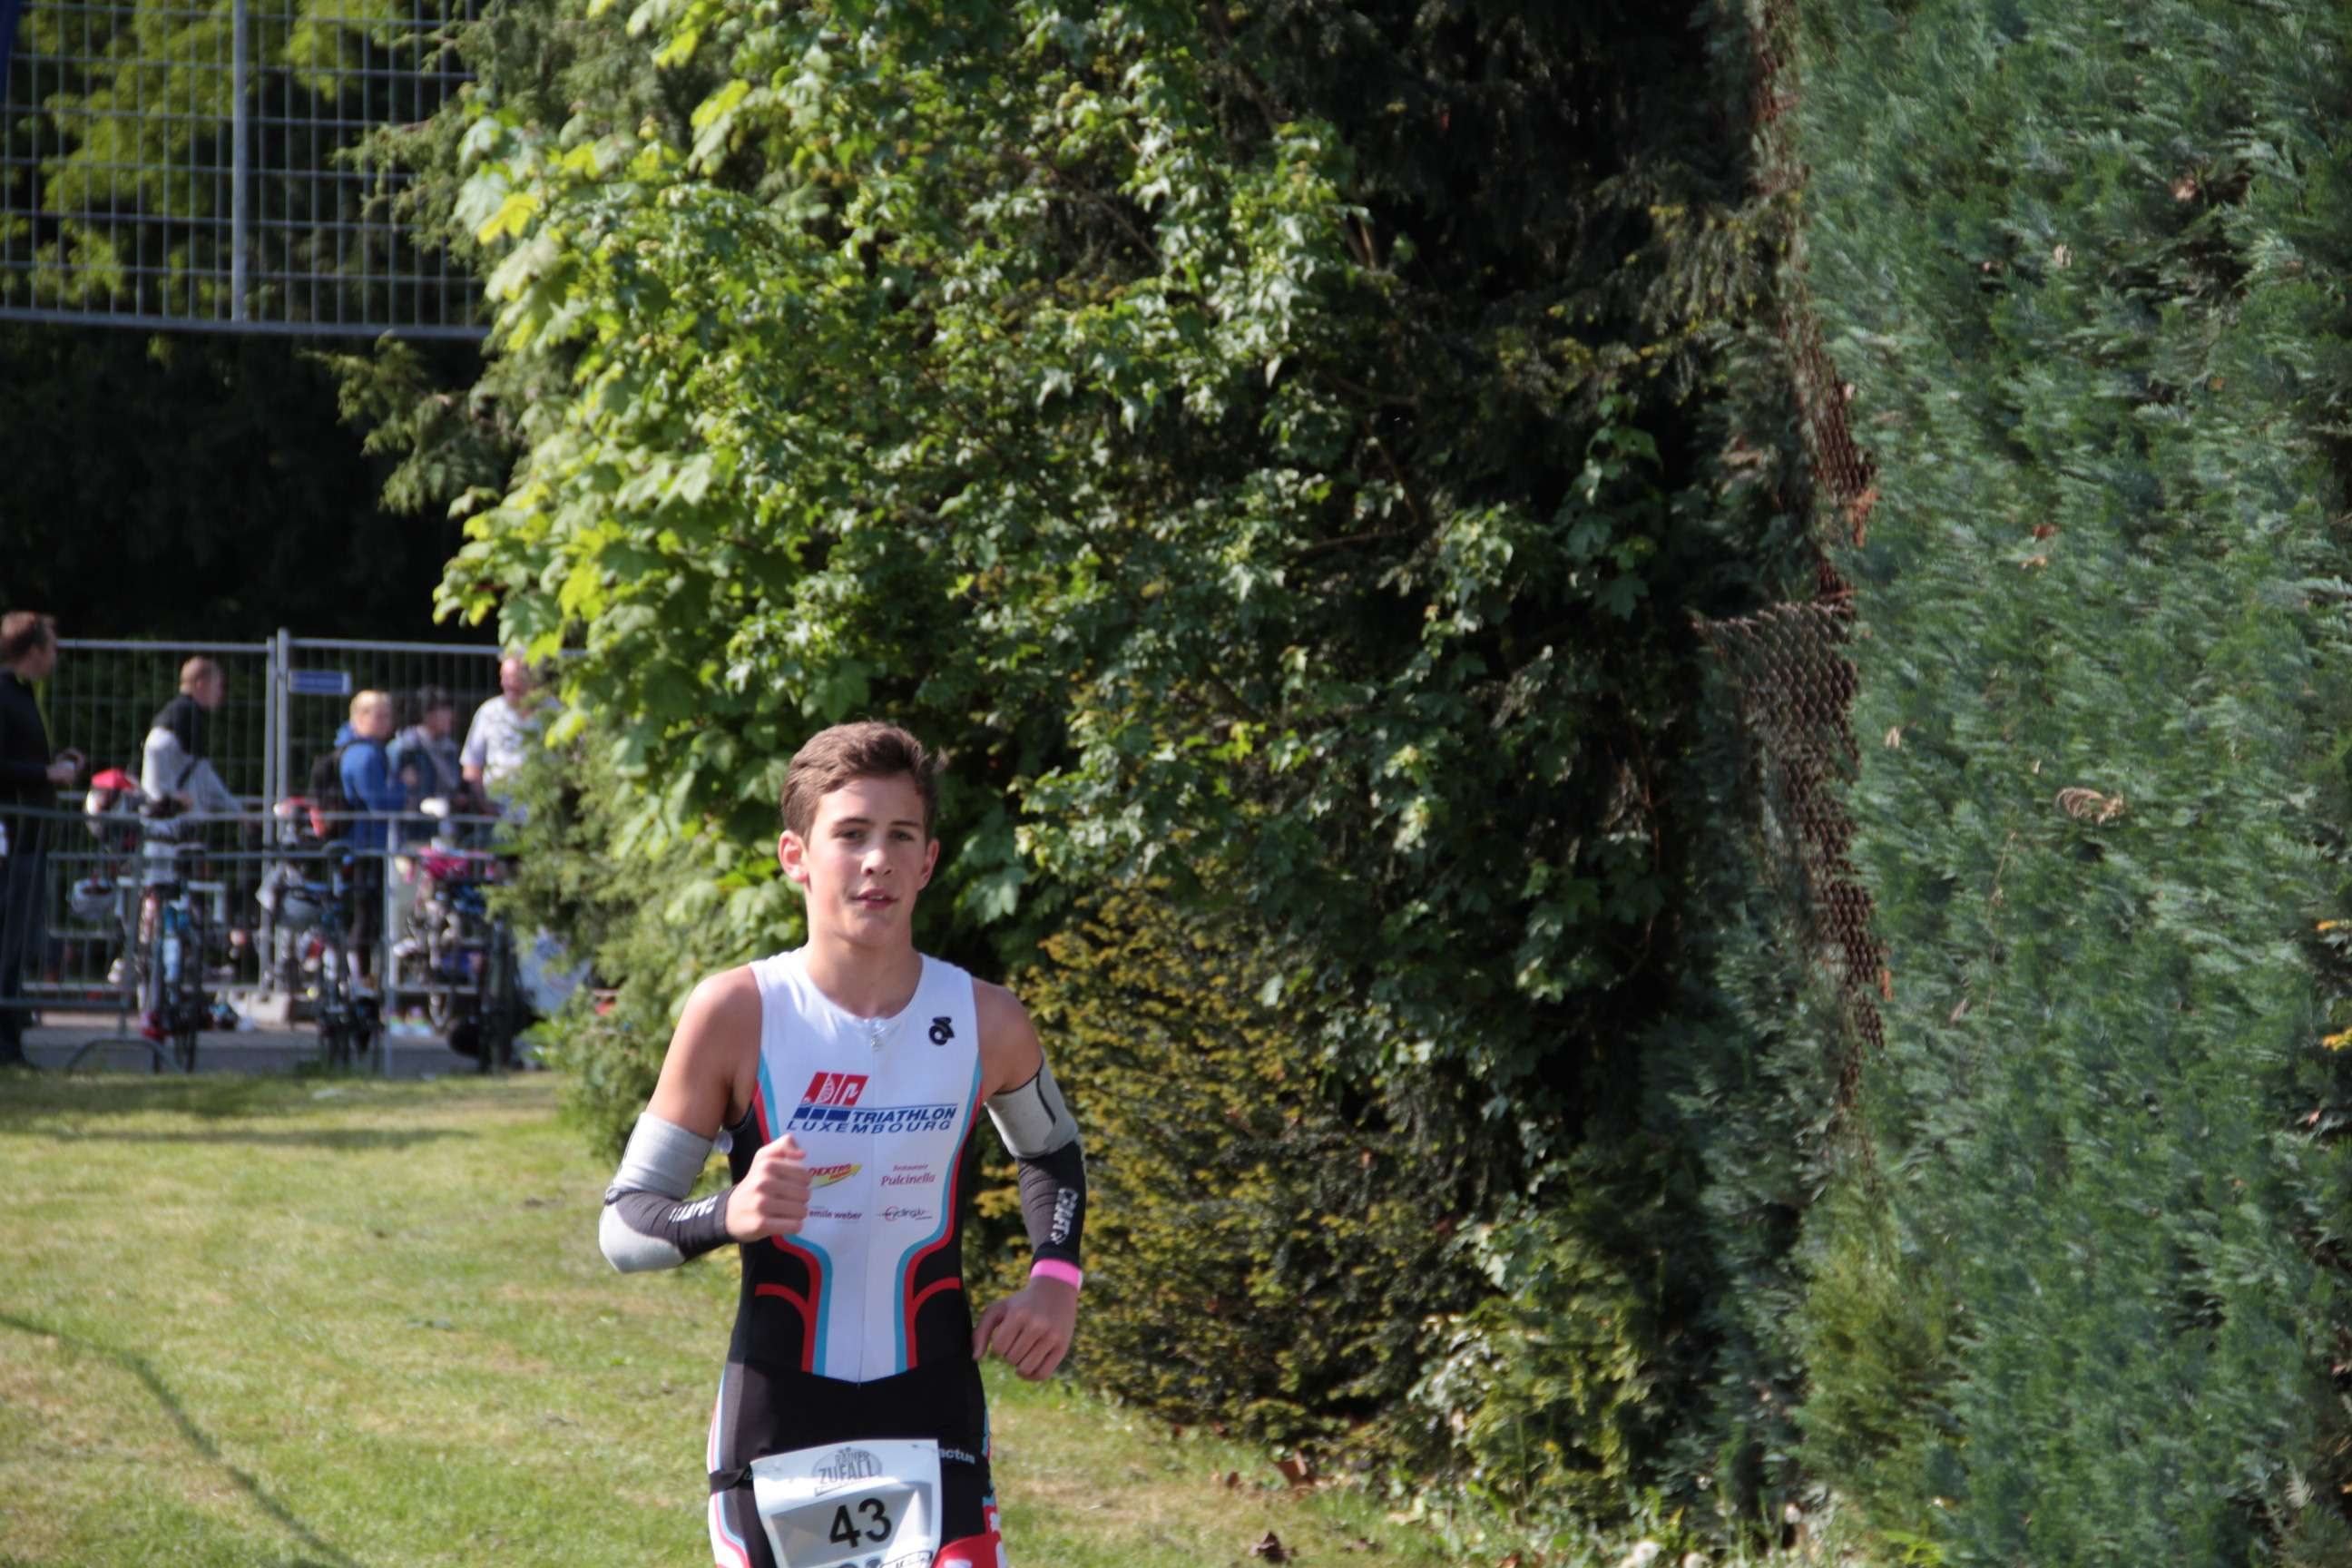 Two Podium Places for Trilux Athletes at Koblenz City Triathlon (04 May 2014)